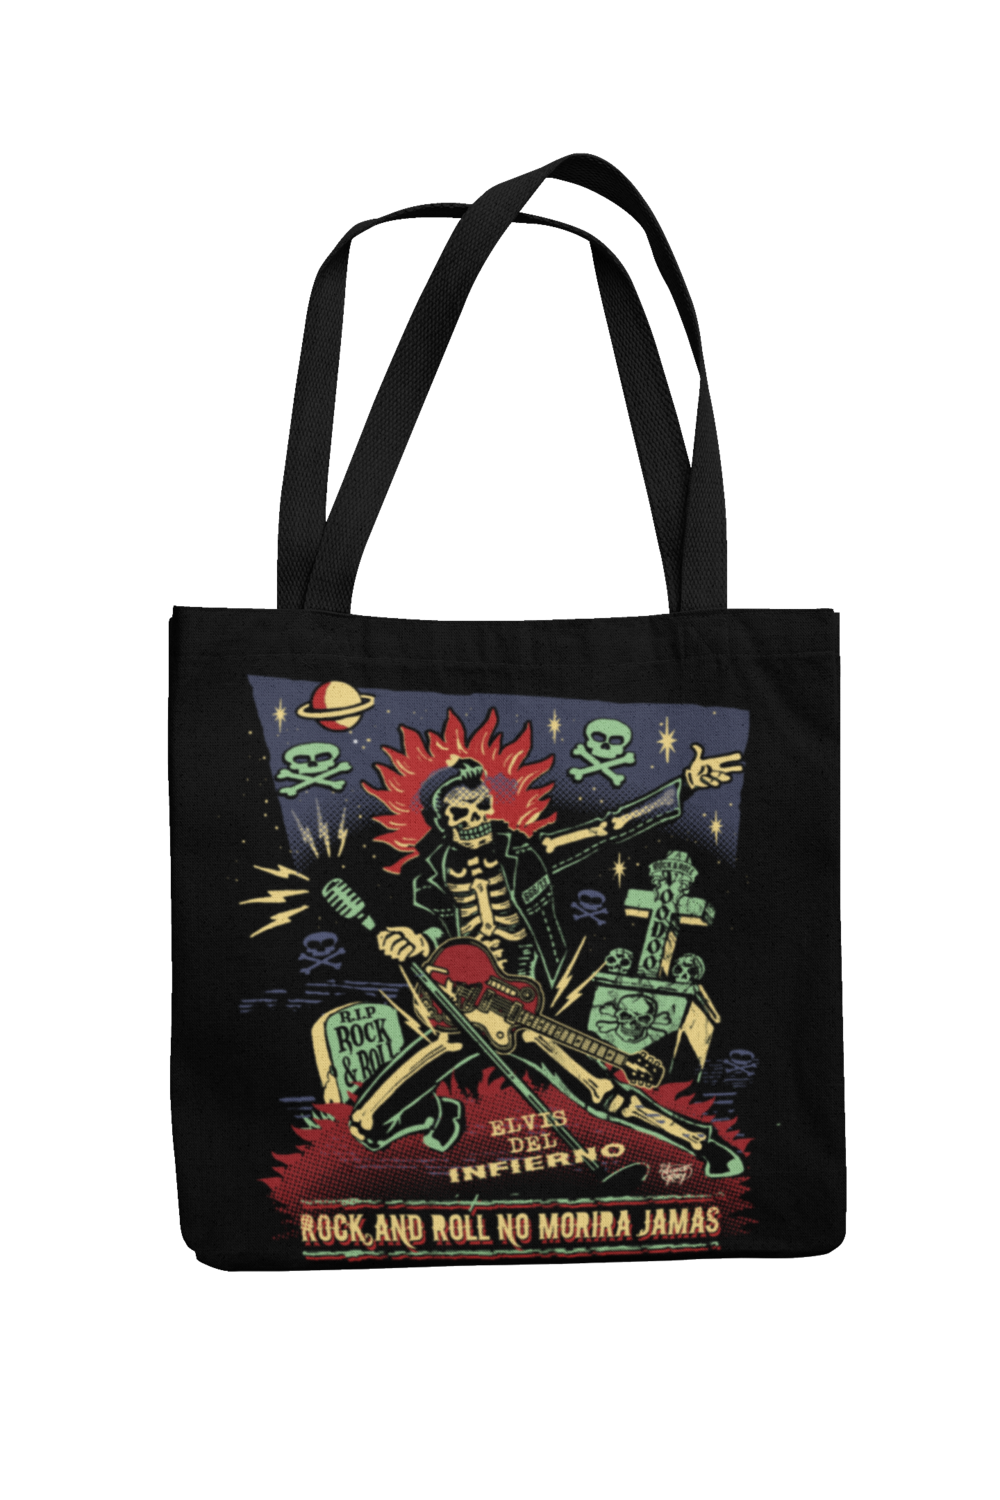 Cotton Bag Rock and roll no morirá jamás design by VINCE RAY